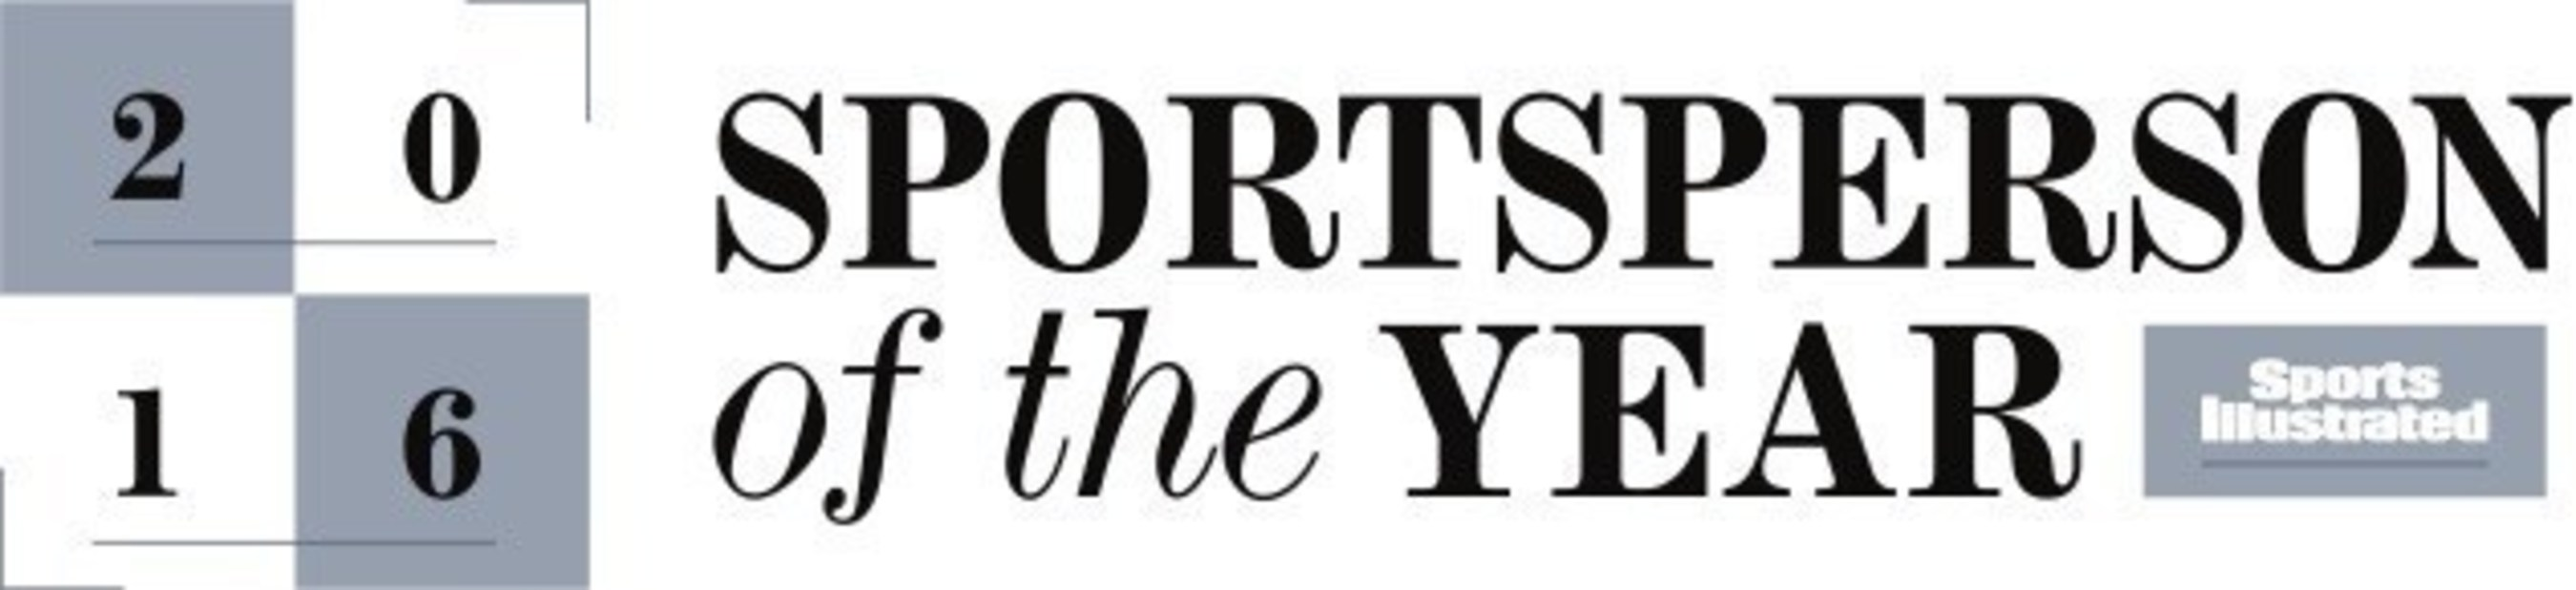 SI 2016 Sportsperson of the Year